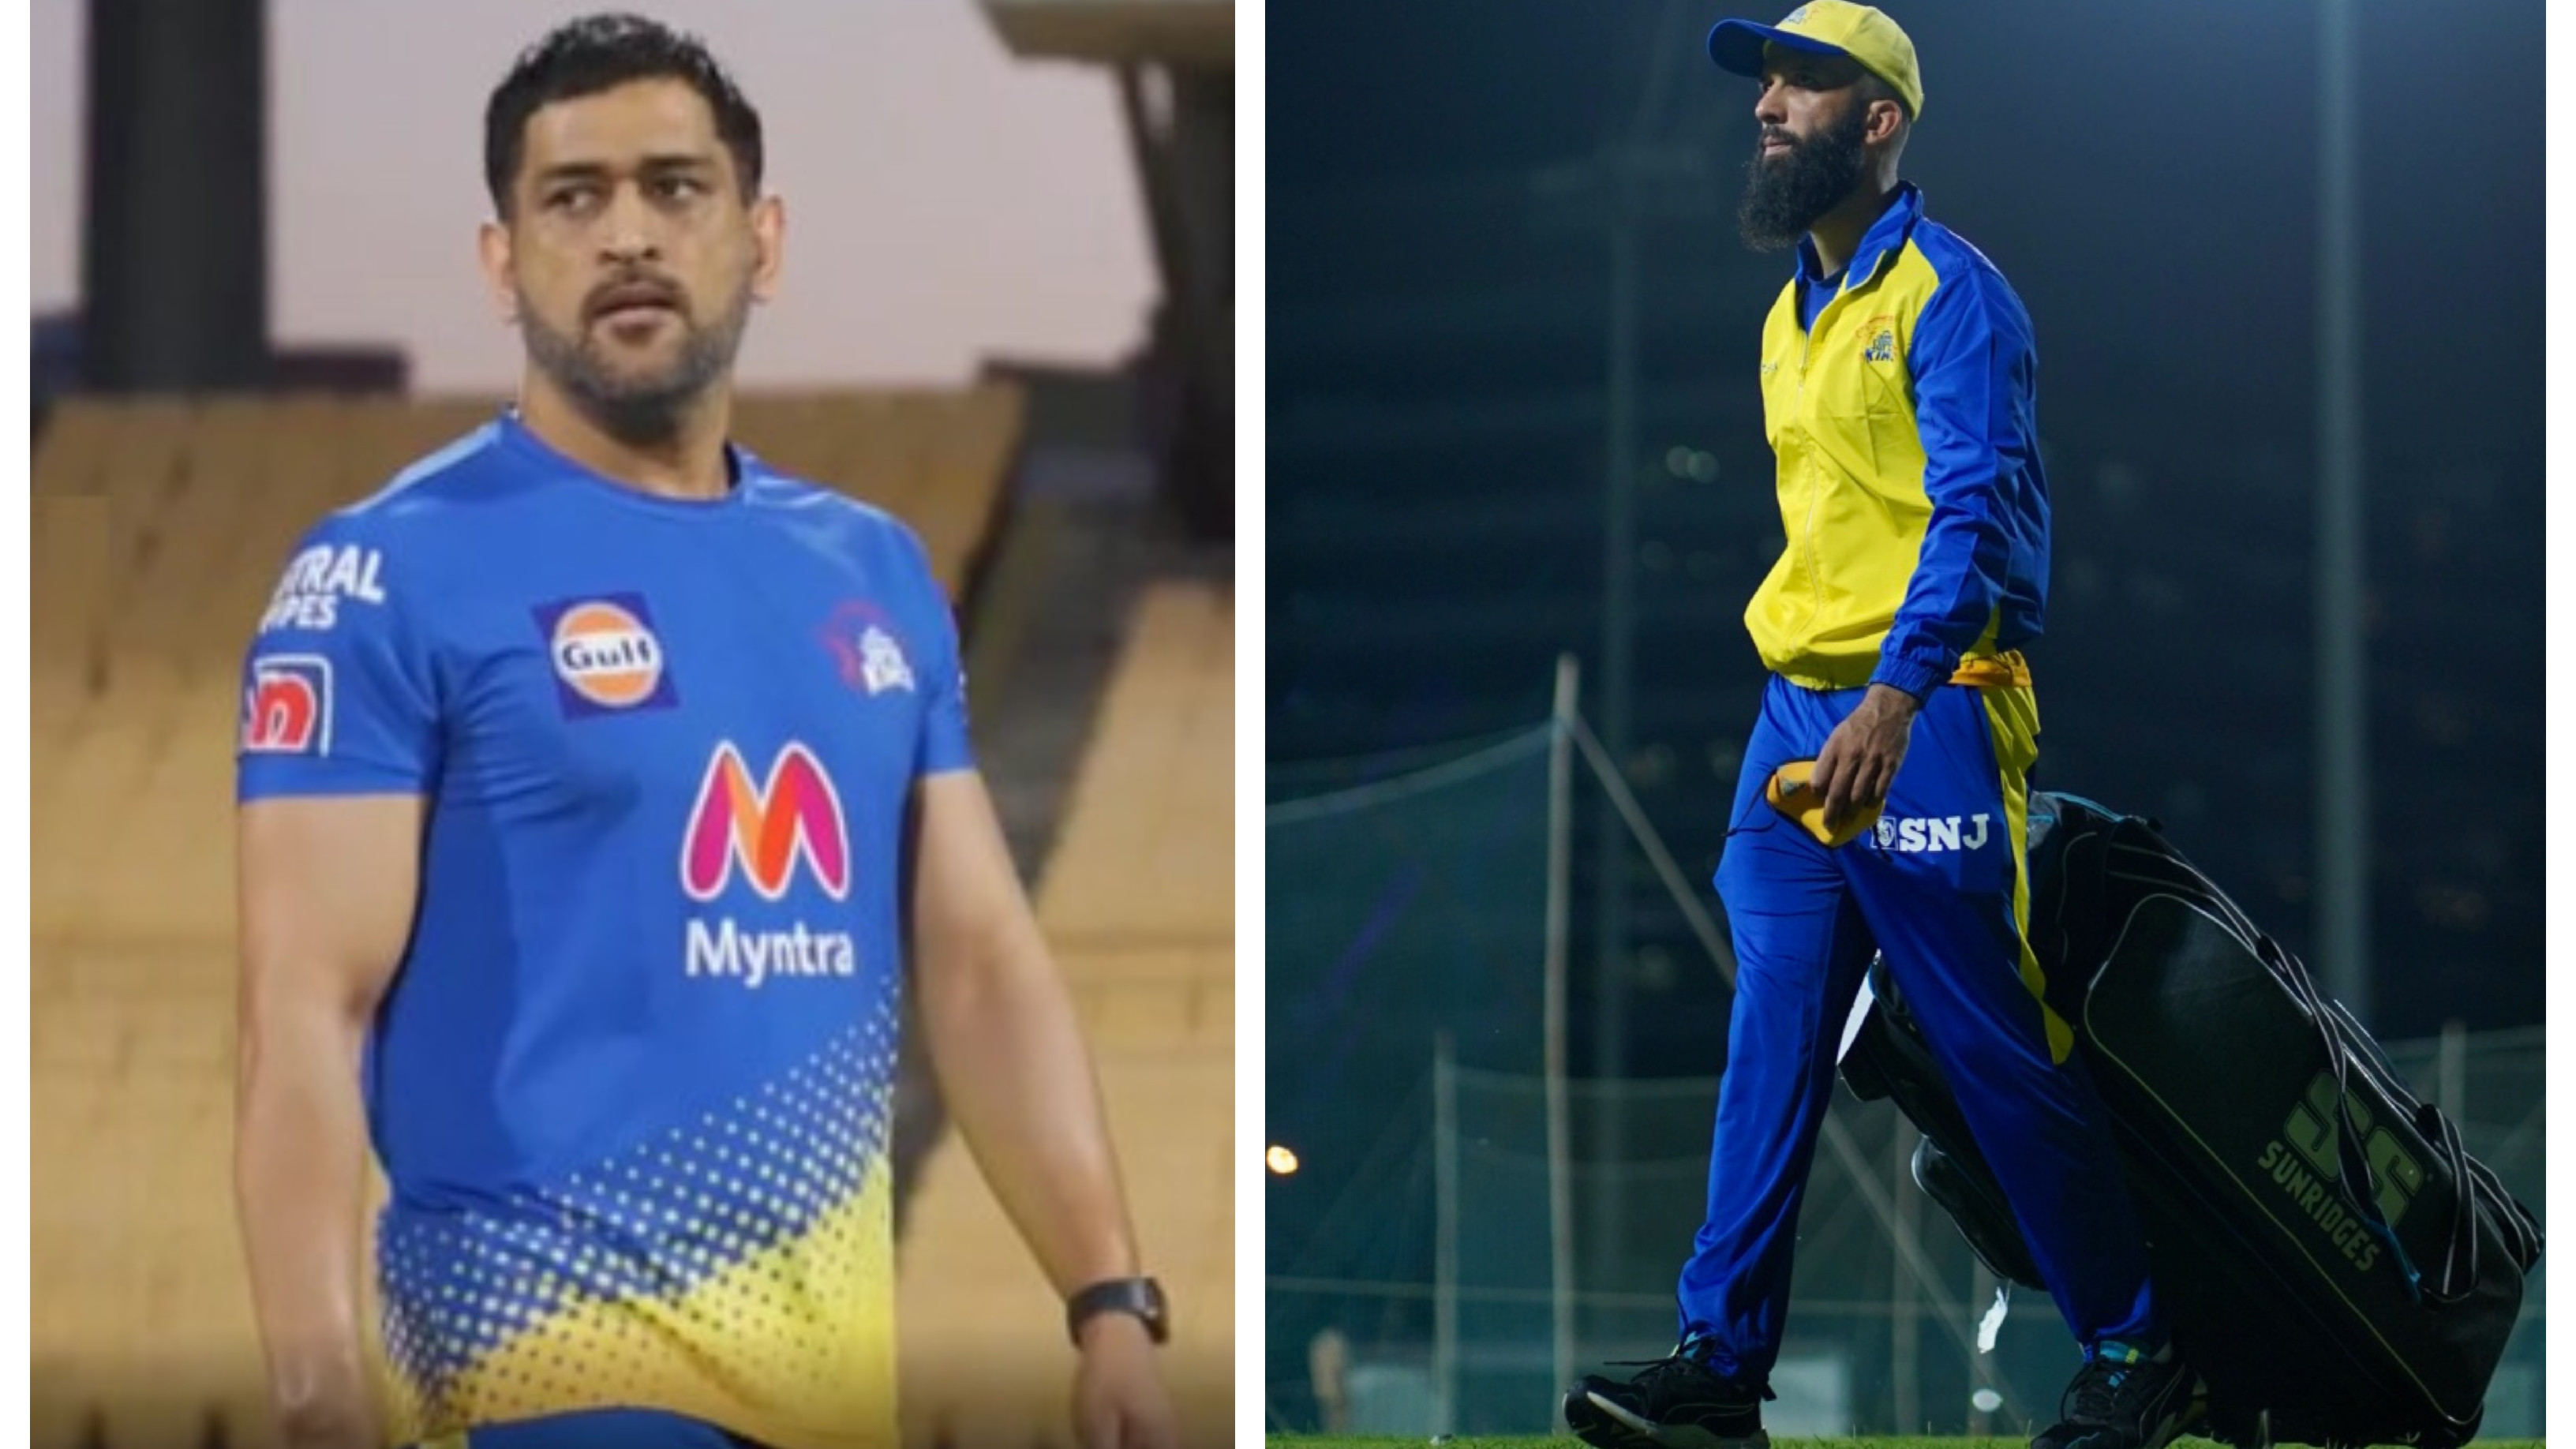 IPL 2021: 'MS Dhoni helps players improve their game', Moeen Ali excited to play under CSK skipper